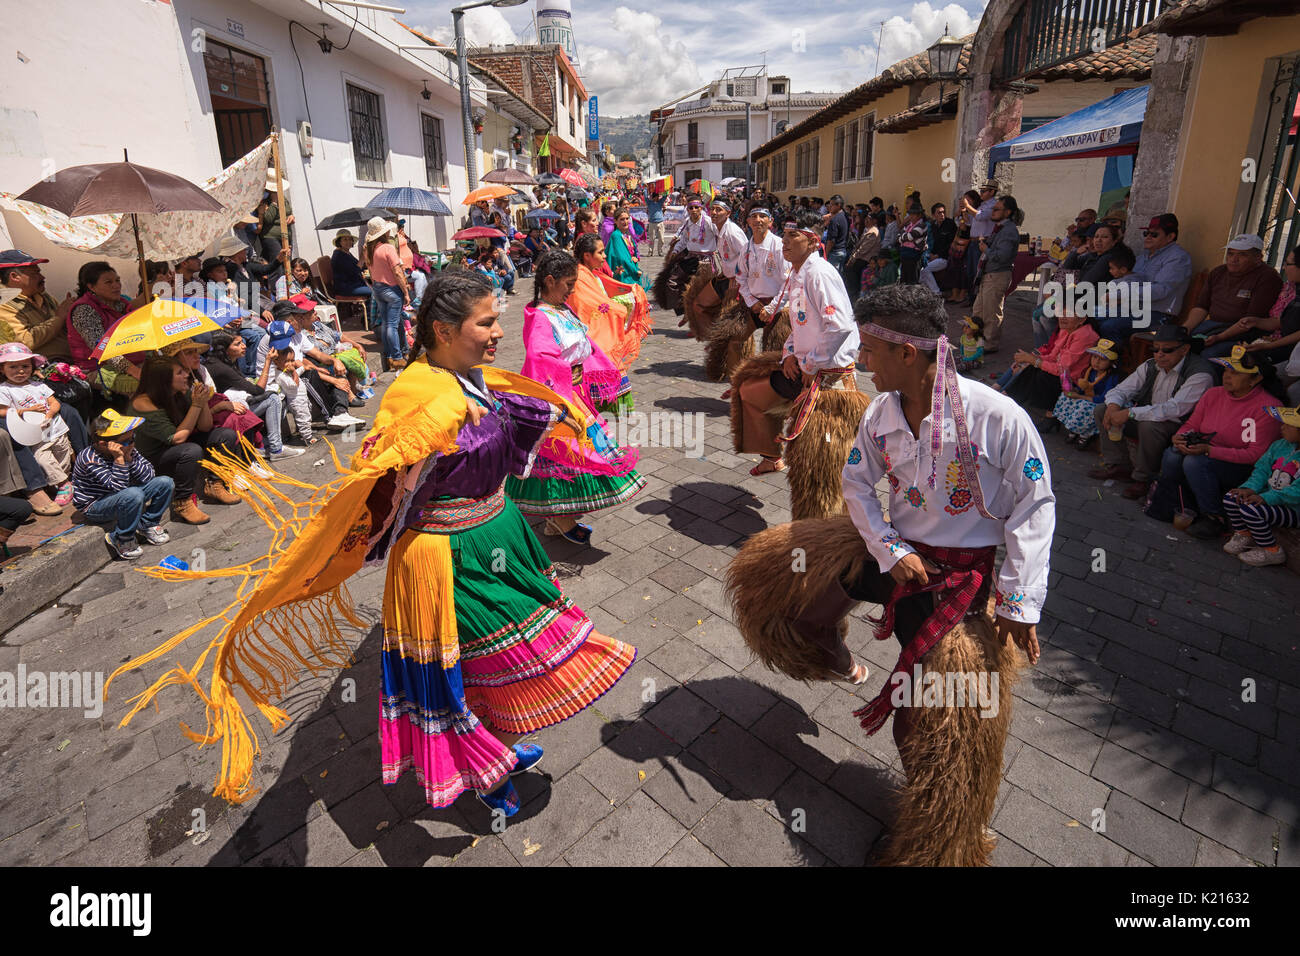 June 17, 2017 Pujili, Ecuador: being a dancer in the Corpus Christi parade is considered a honour and privilege by the indigenous population - Stock Image